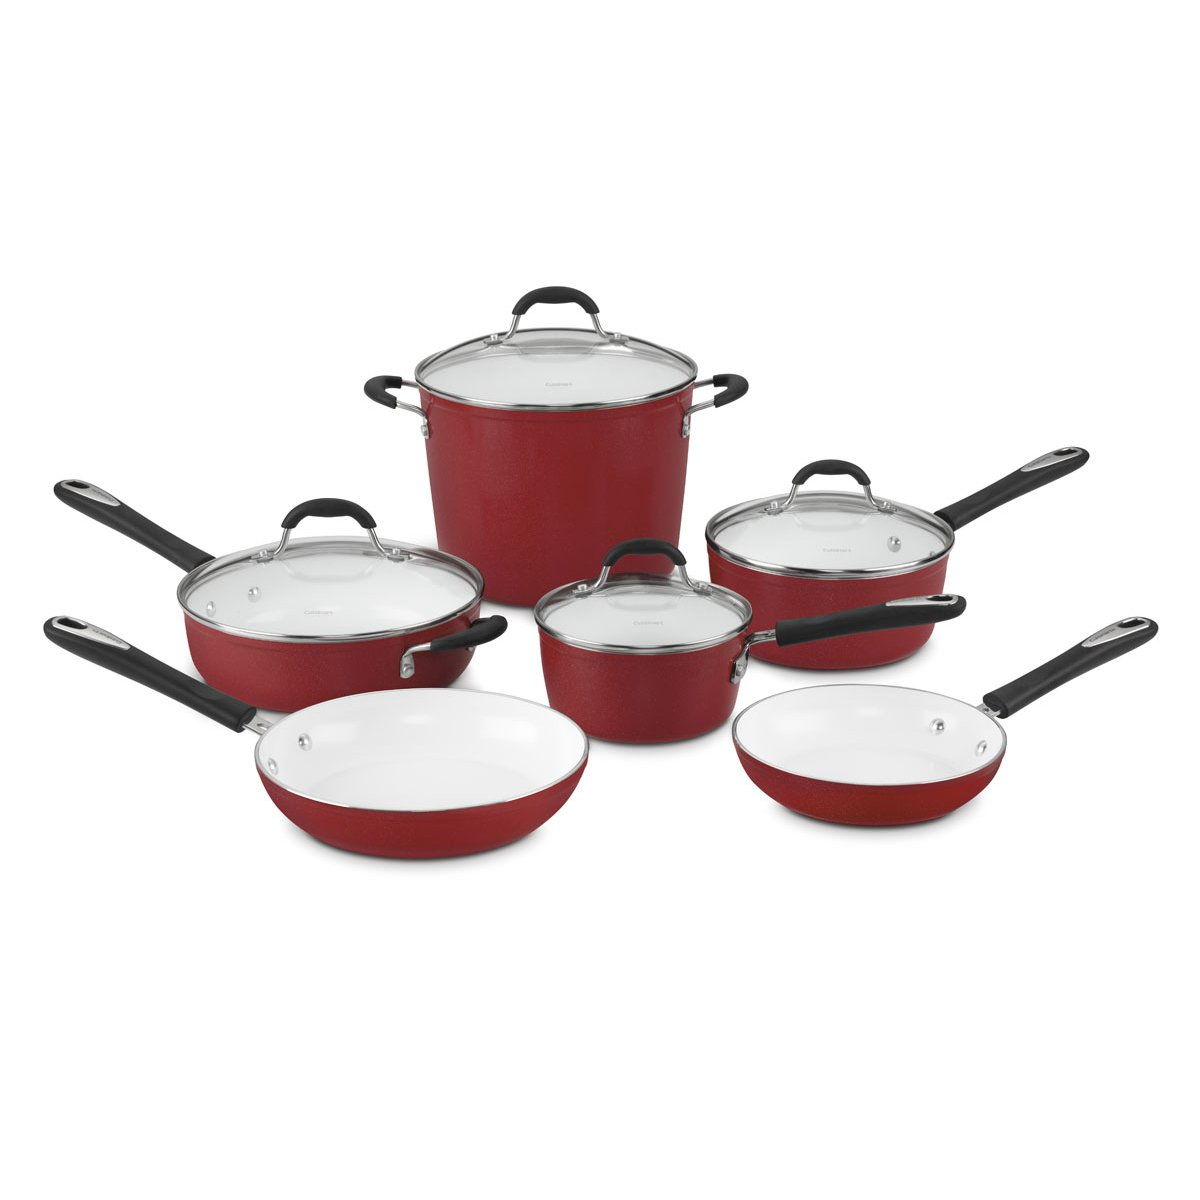 Rachael Ray Nonstick Aluminum Cookware Set with Blue Handles (piece Set) Quick View We work every day to bring you discounts on new products across our entire store. Whether you're looking for memorable gifts or everyday essentials, you can buy them here for less.